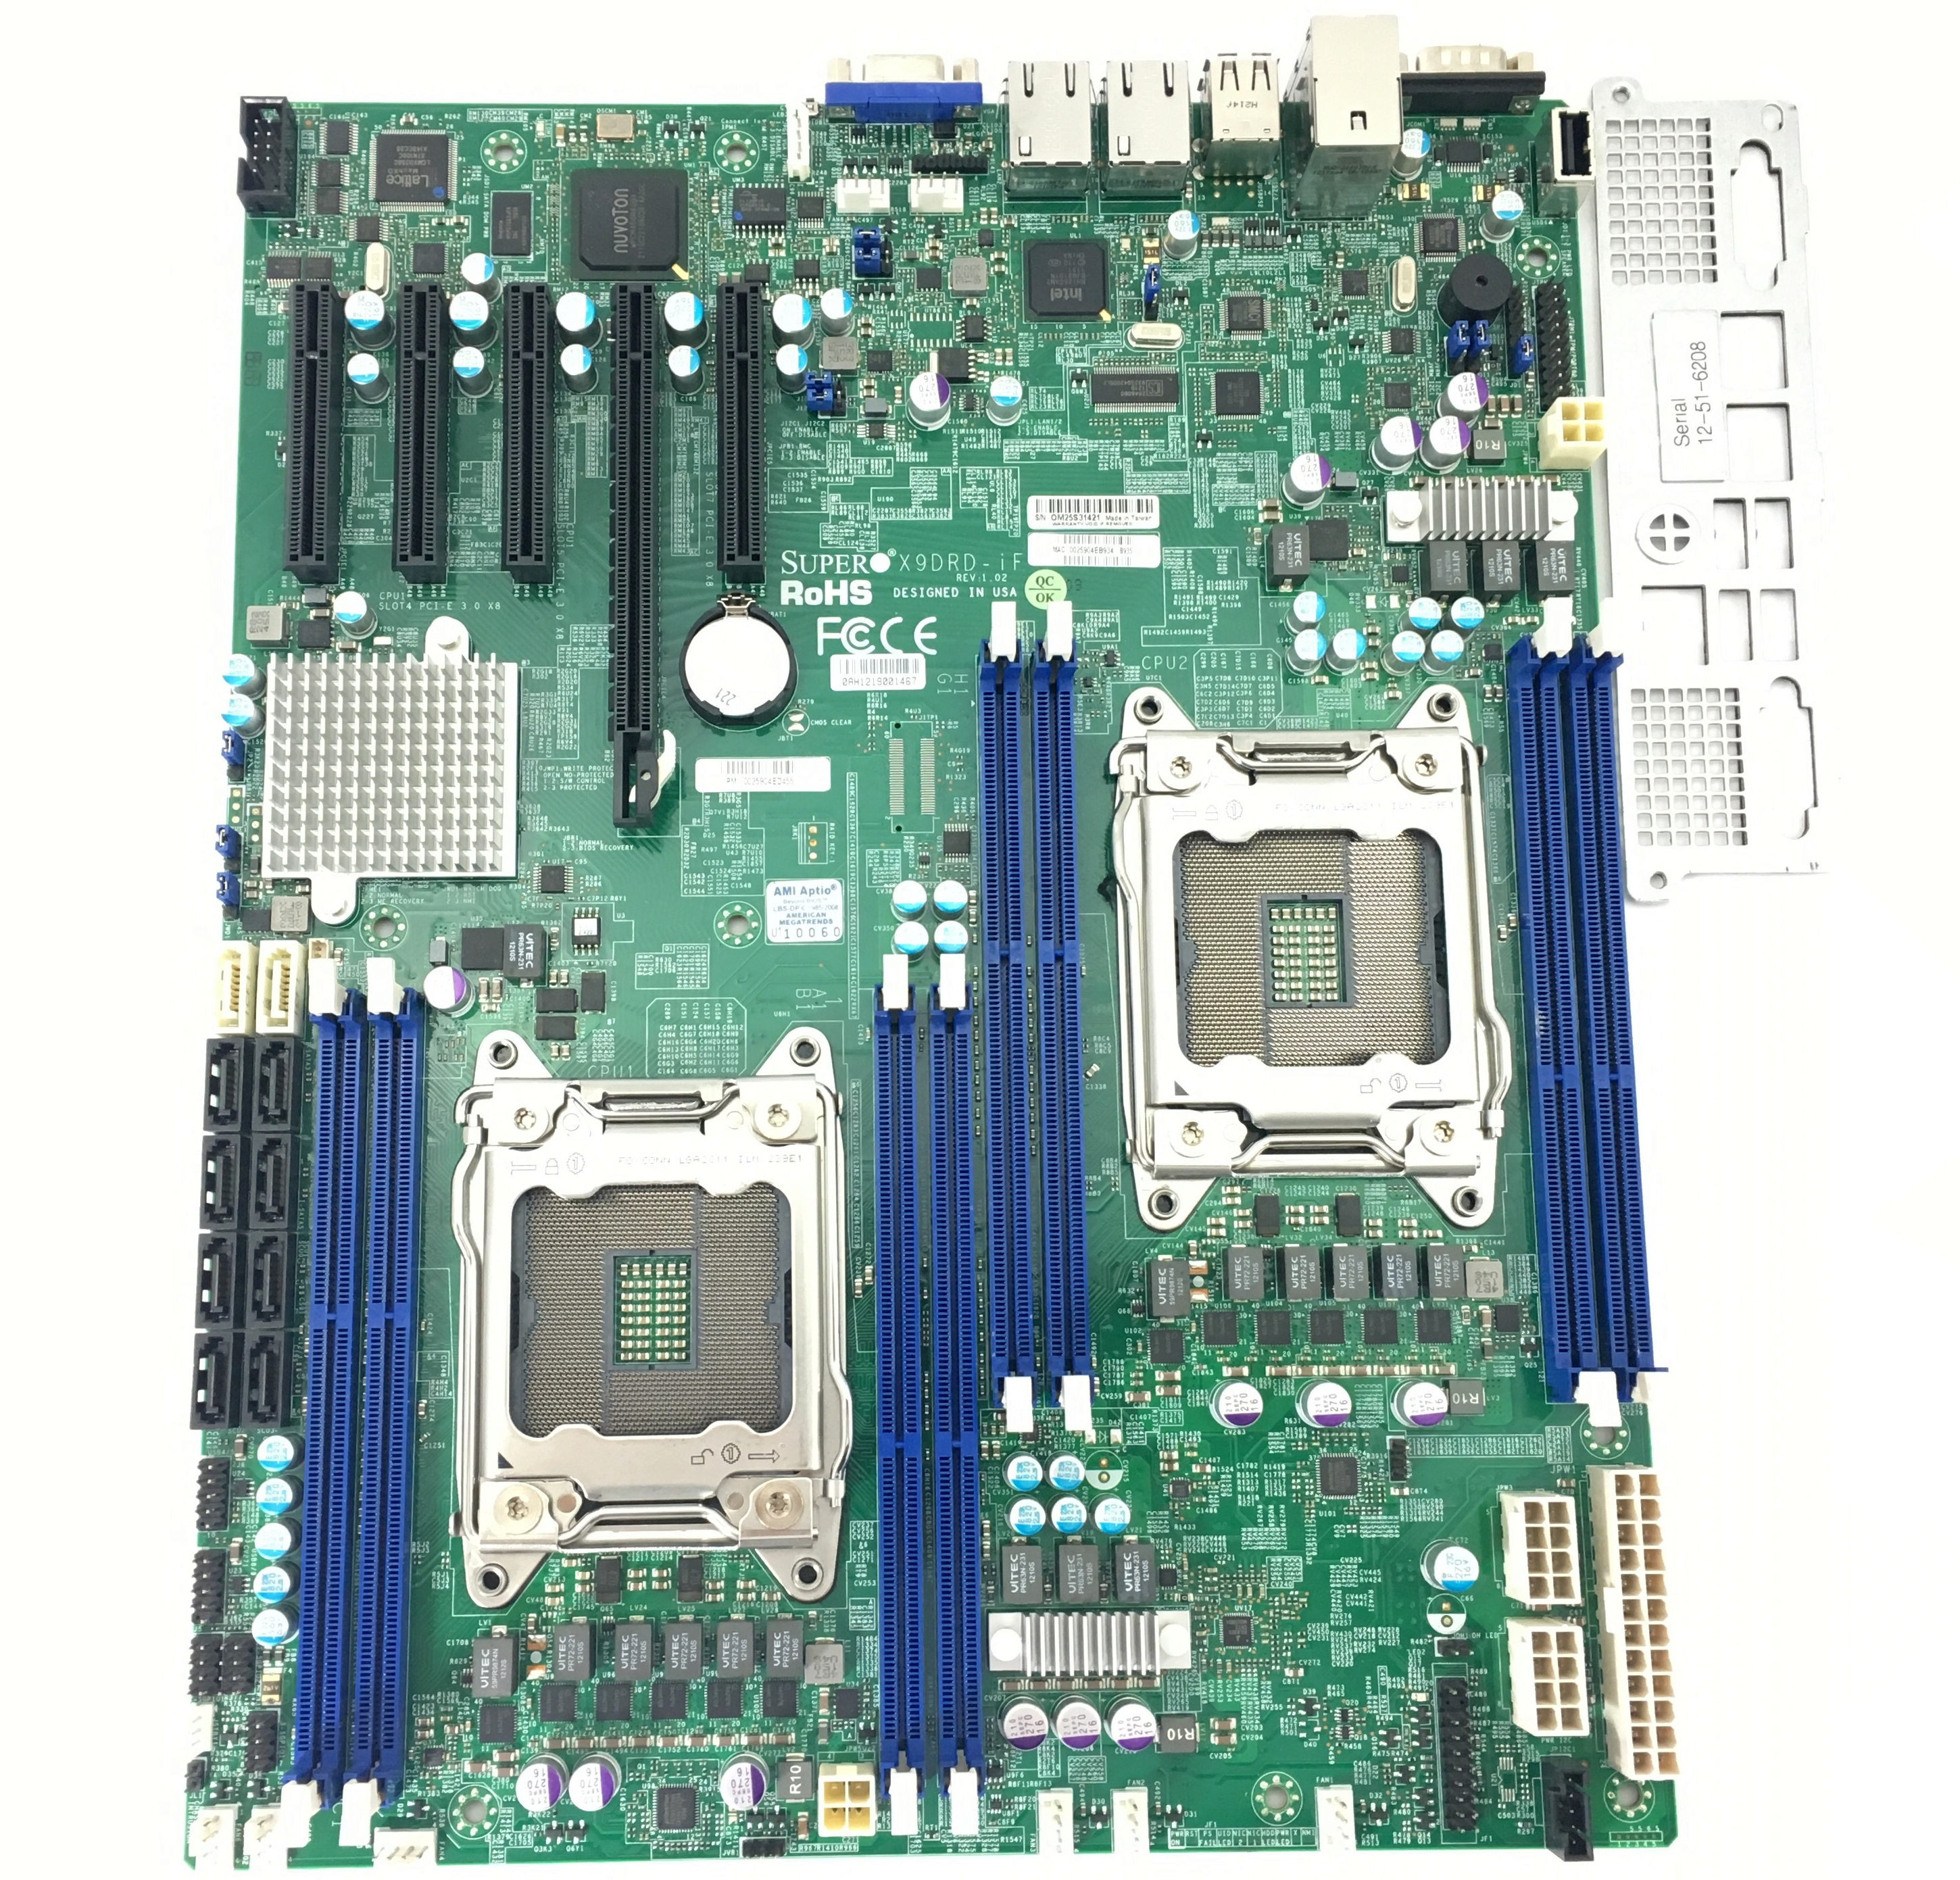 Supermicro Xeon EATX Dual Socket LGA2011 Mother Board (X9DRD-IF)